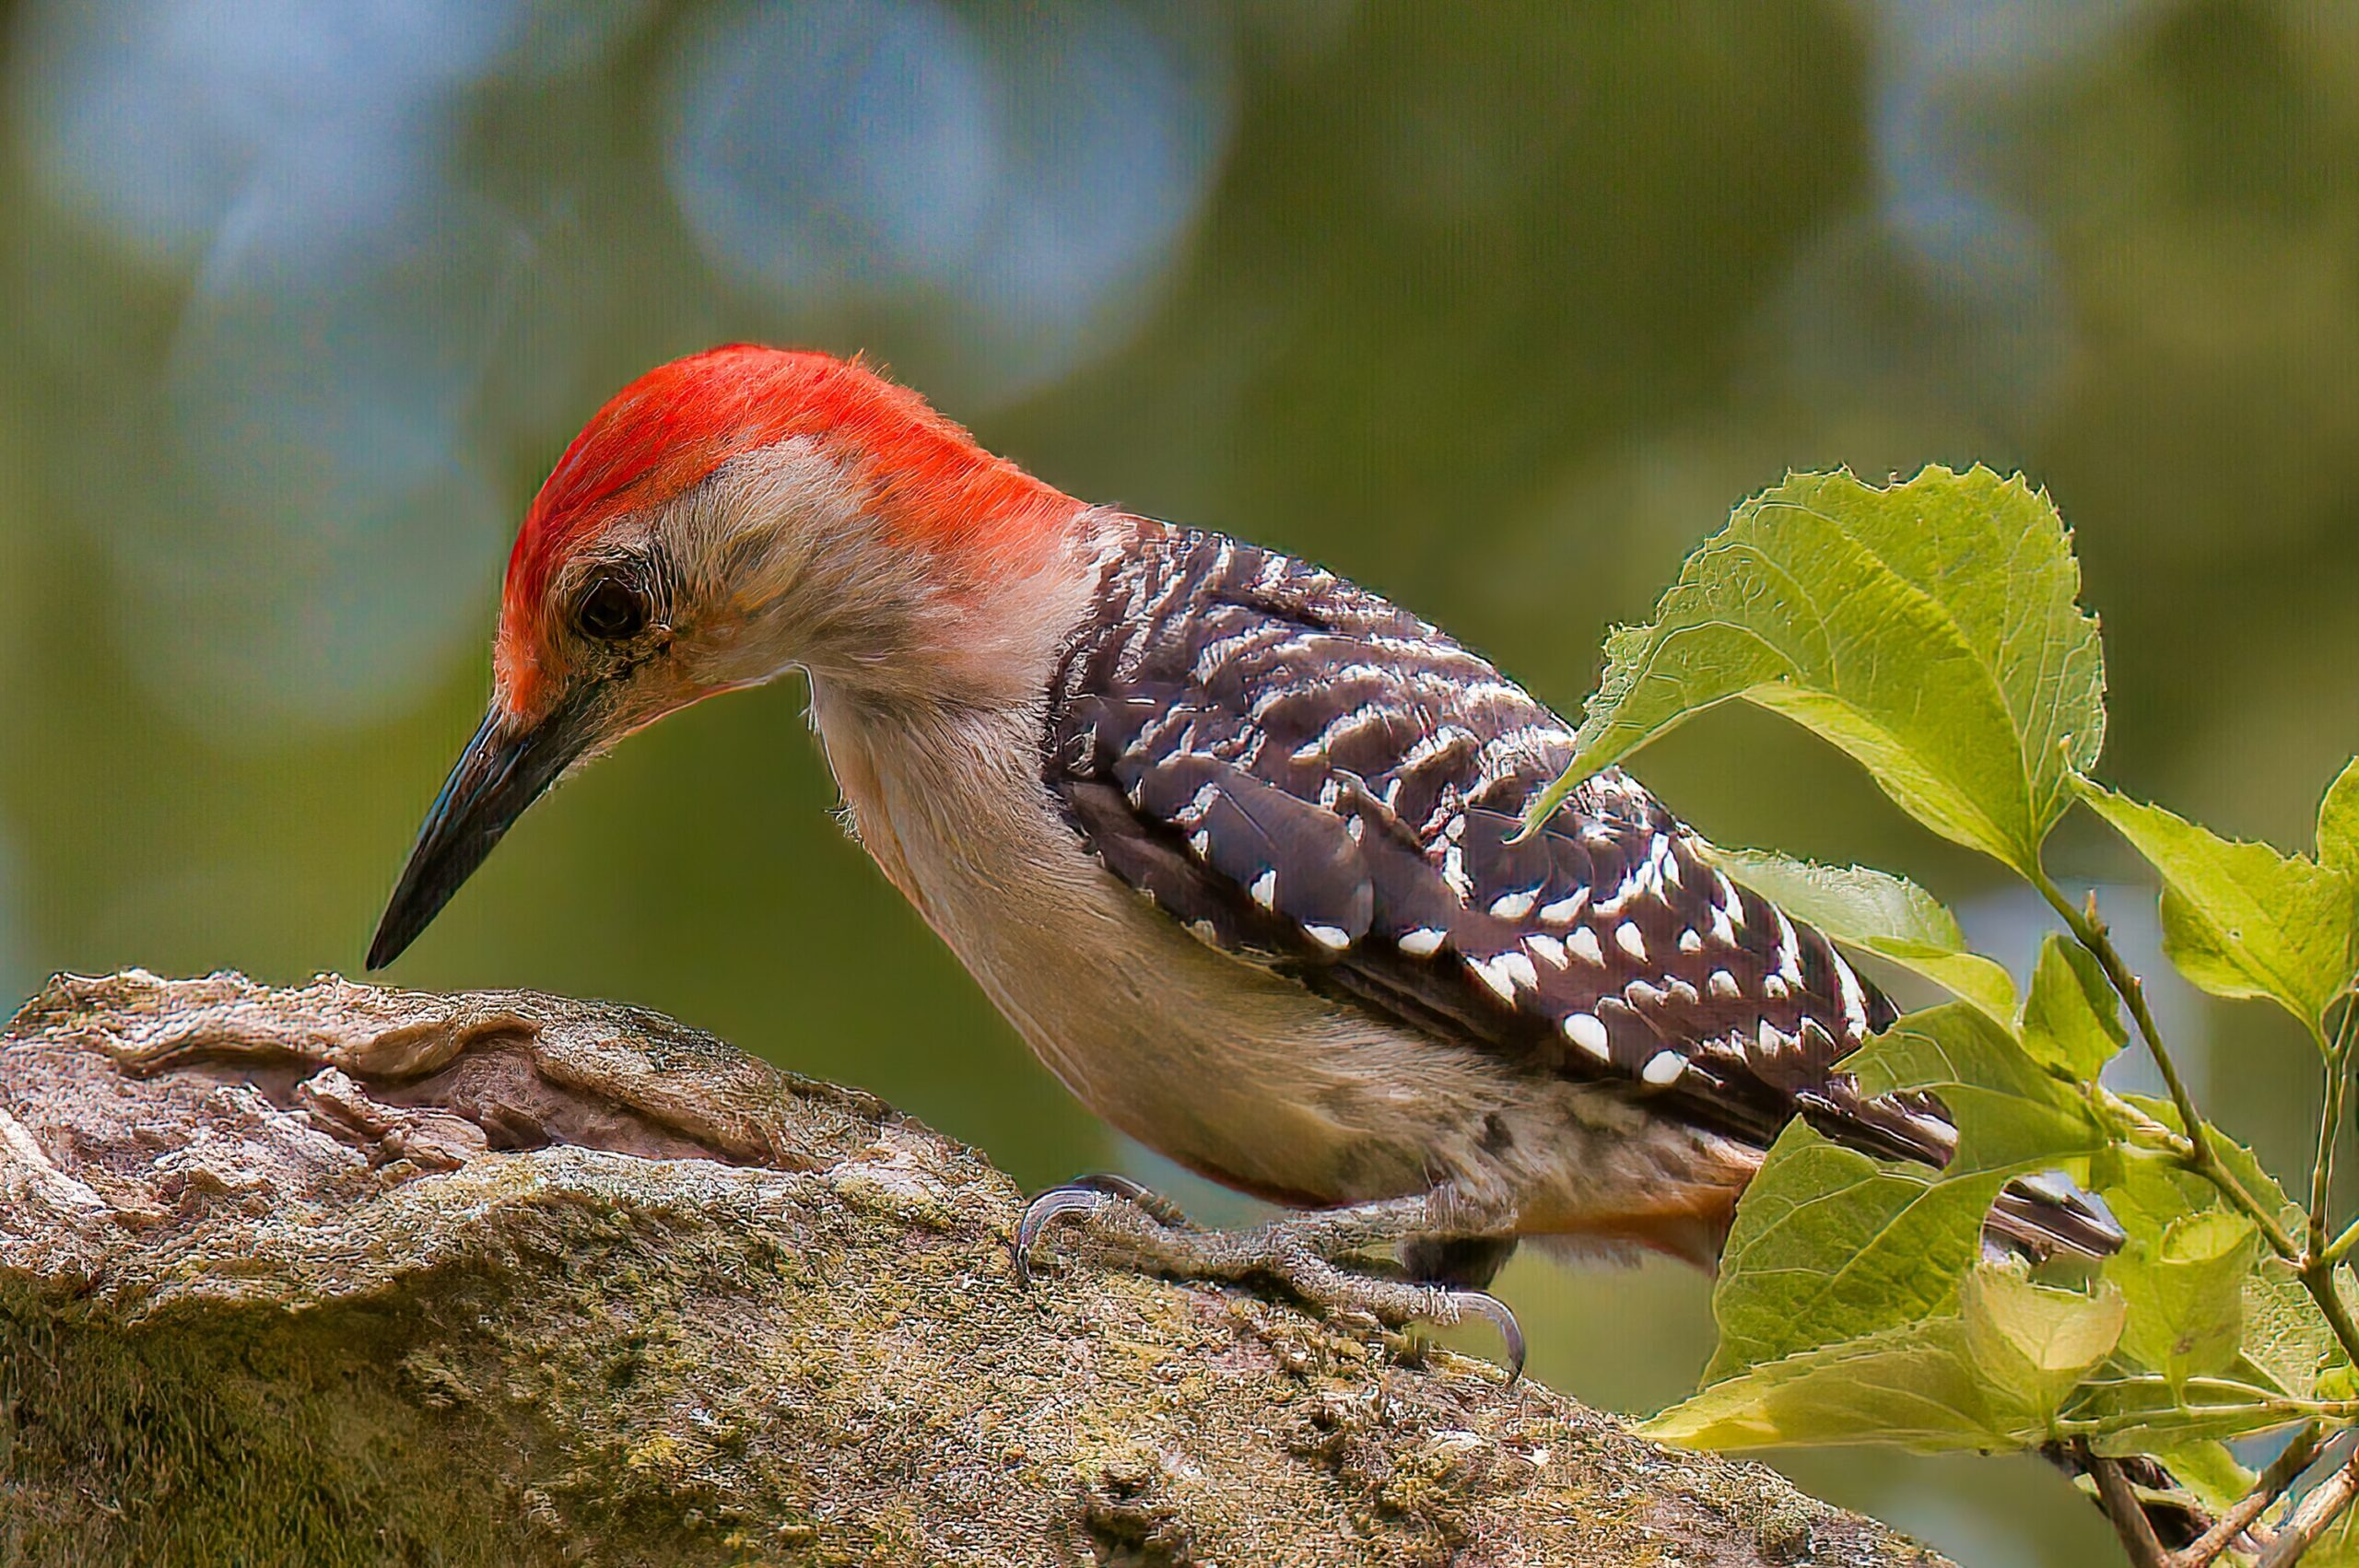 A red-bellied woodpecker sitting on a bough